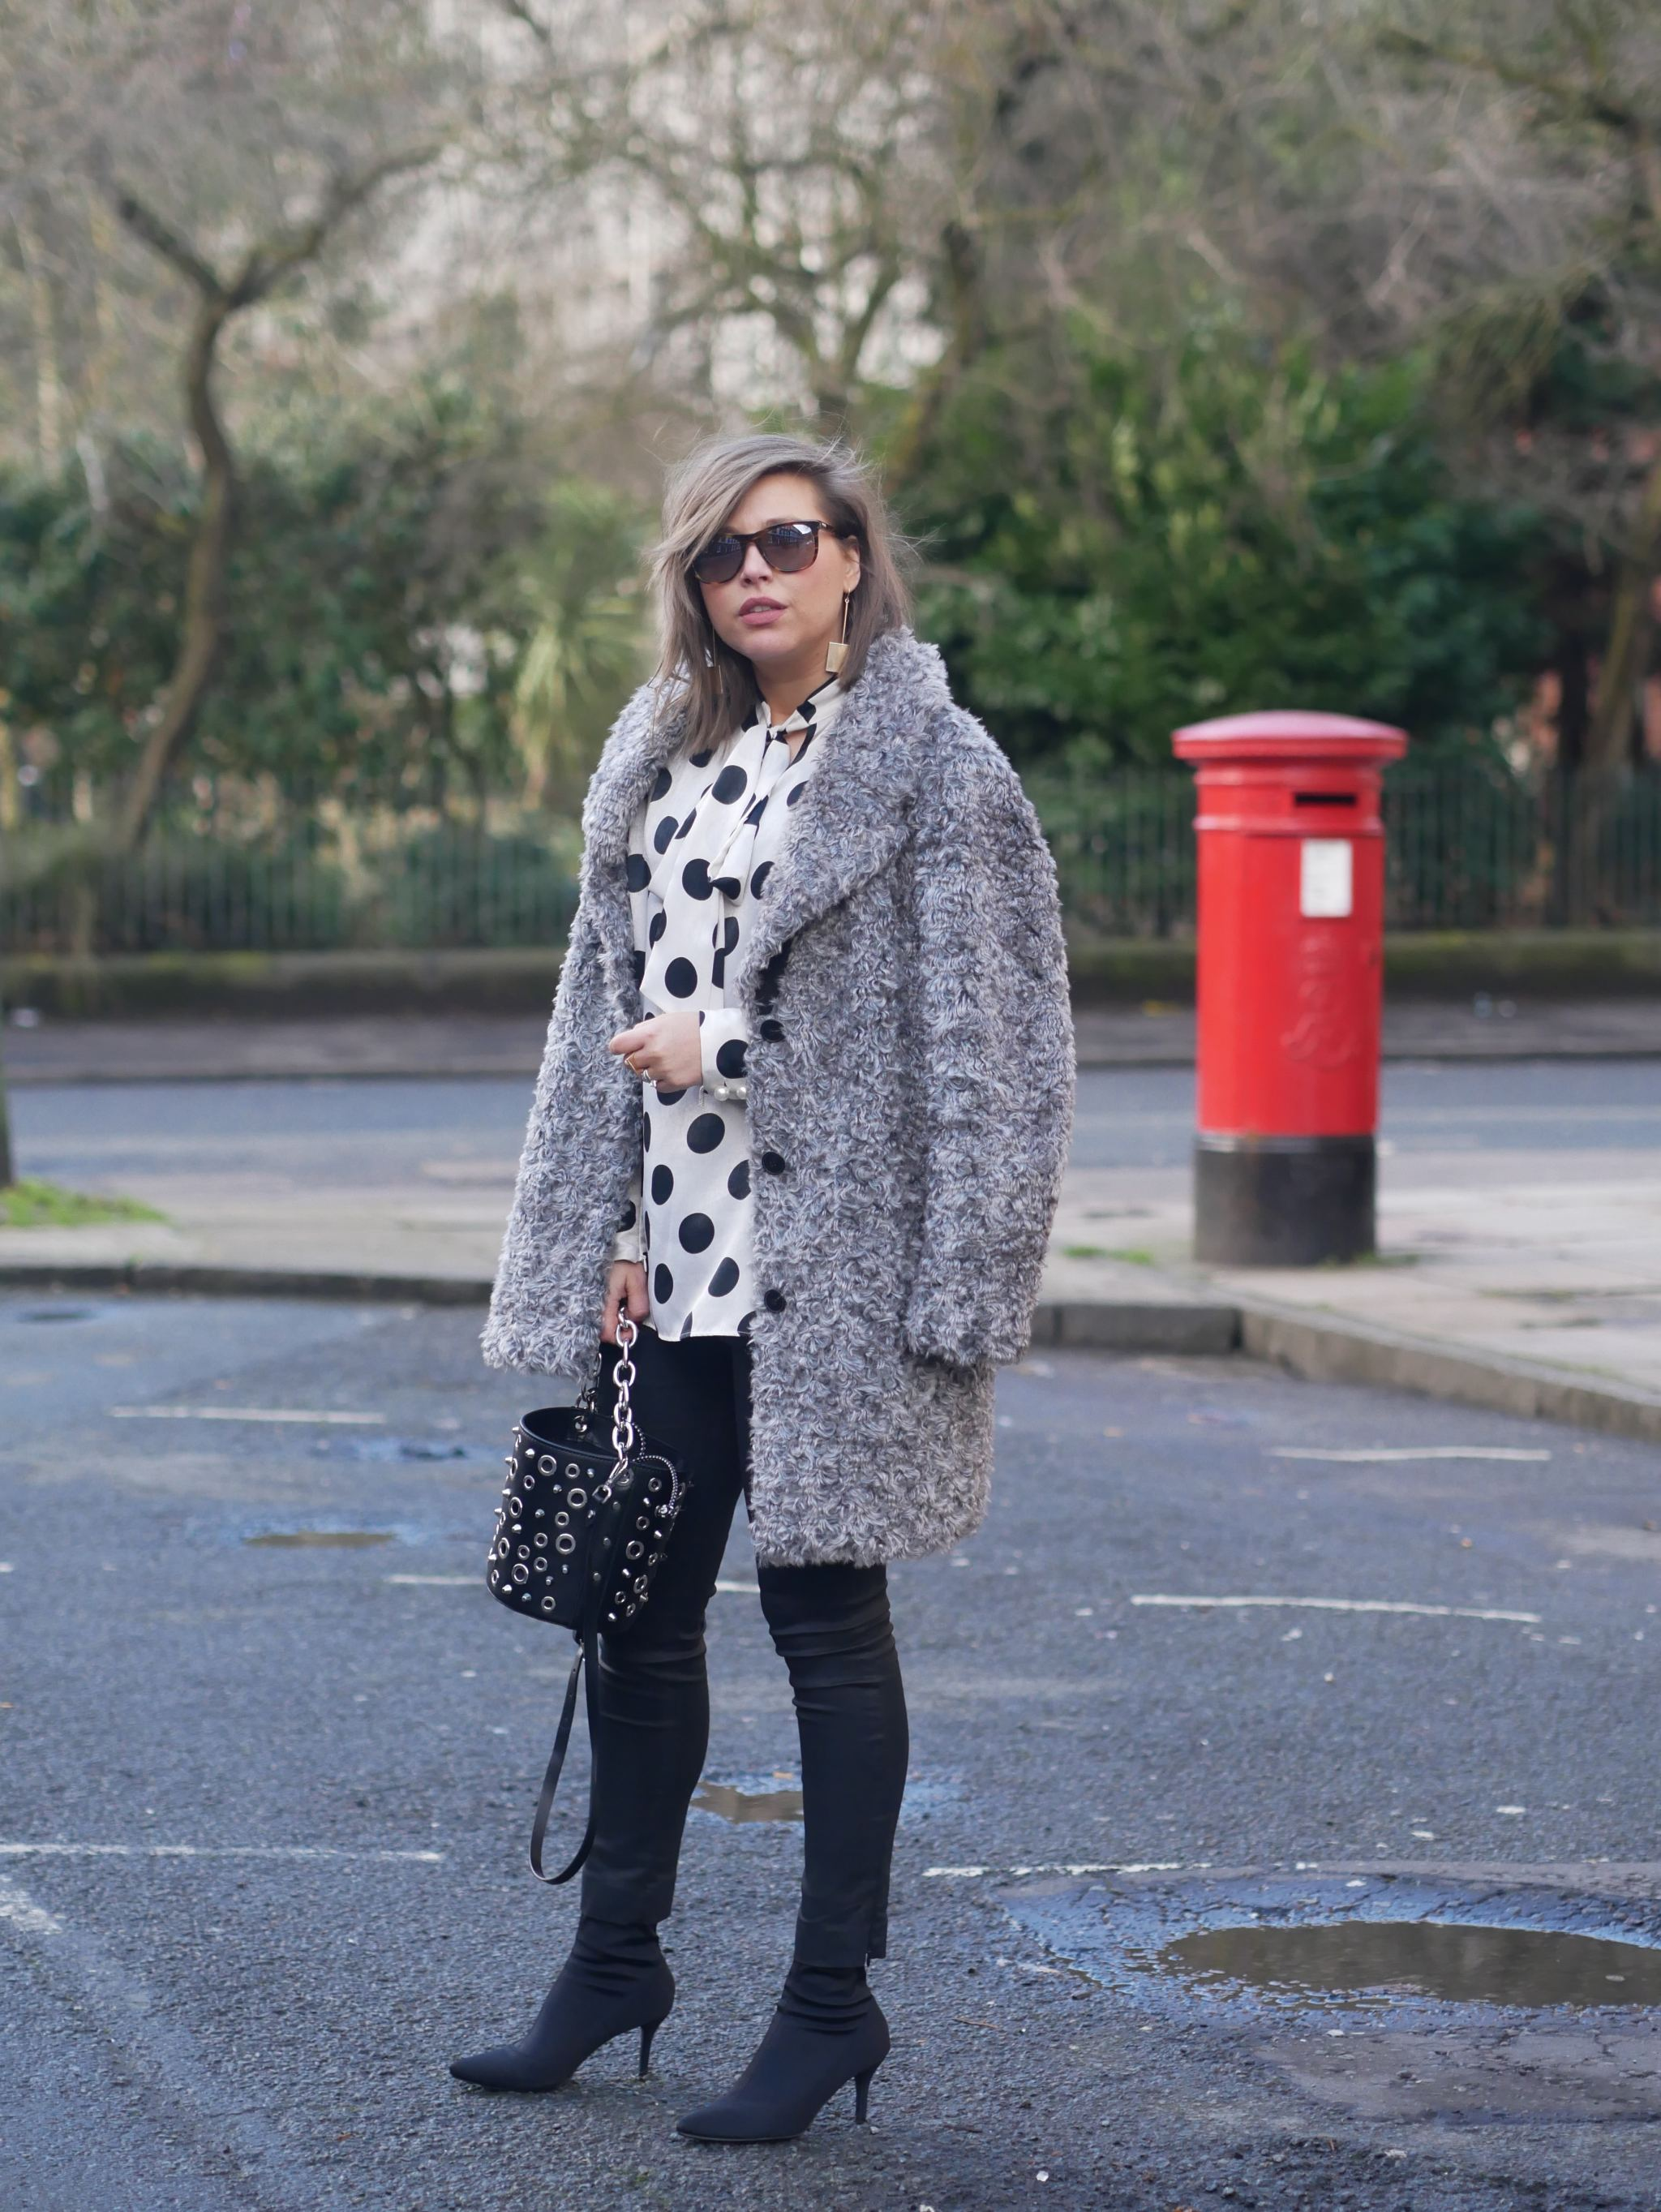 manchester fashion blogger , fashion style, zara coat, sock boots